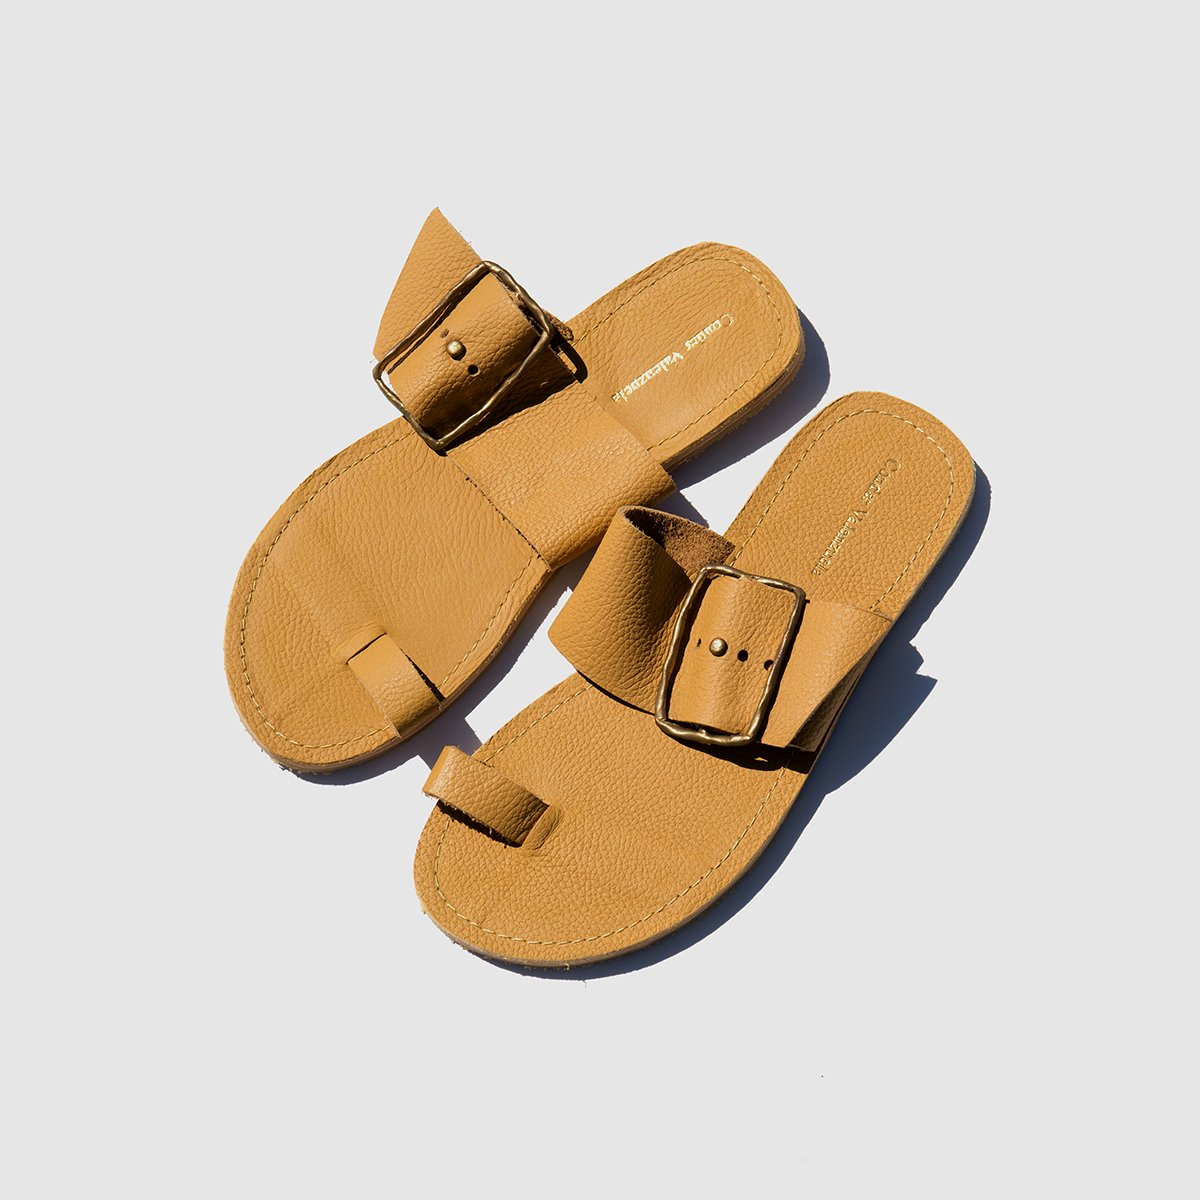 SHOES - SAND CONDER VALENZUELA SANDALS